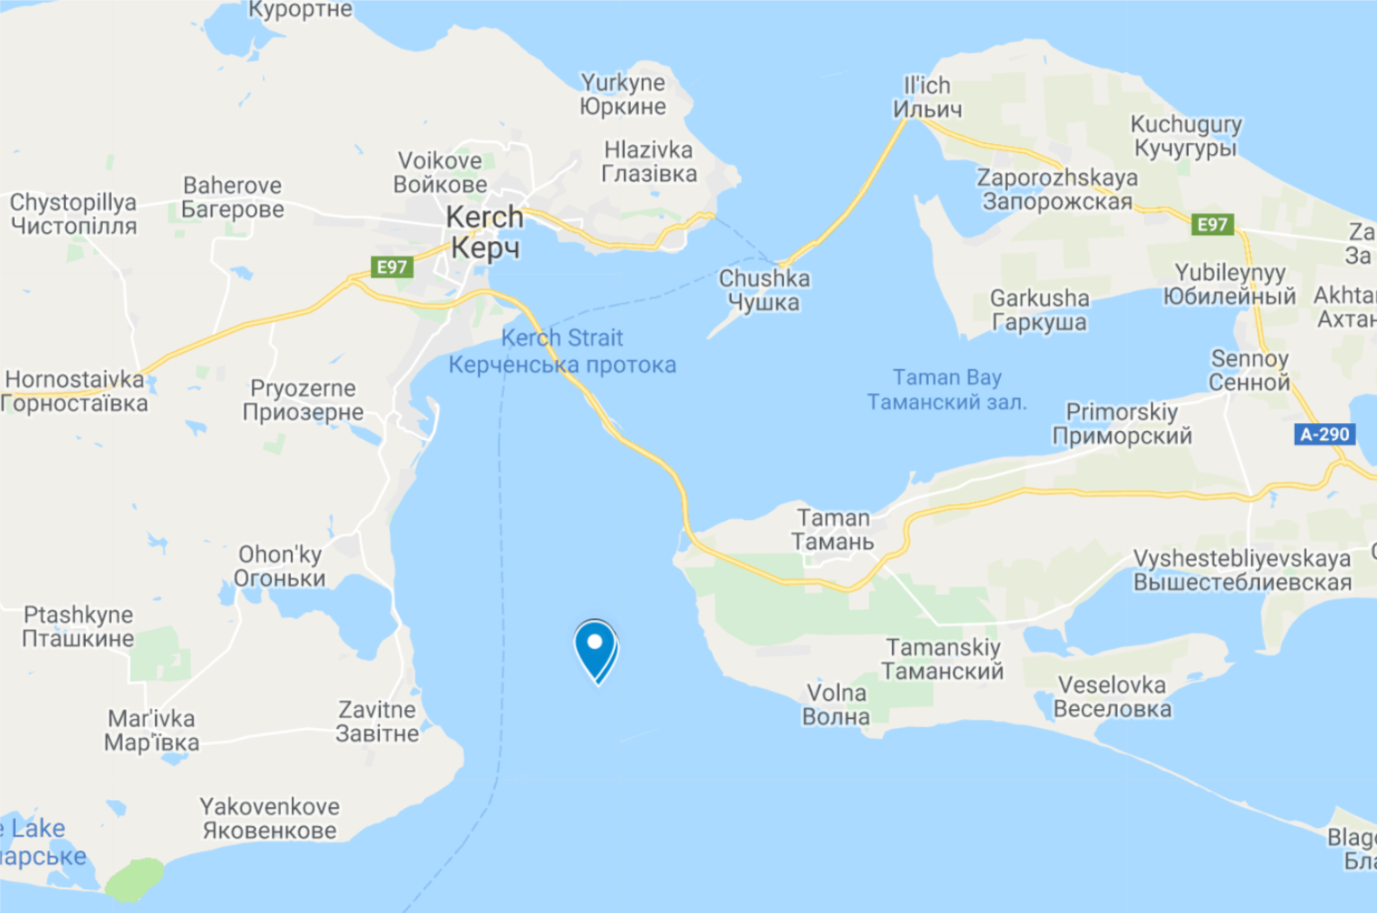 Image 7: Locations of the bulk carrier 'Aviona' on the 25th of November